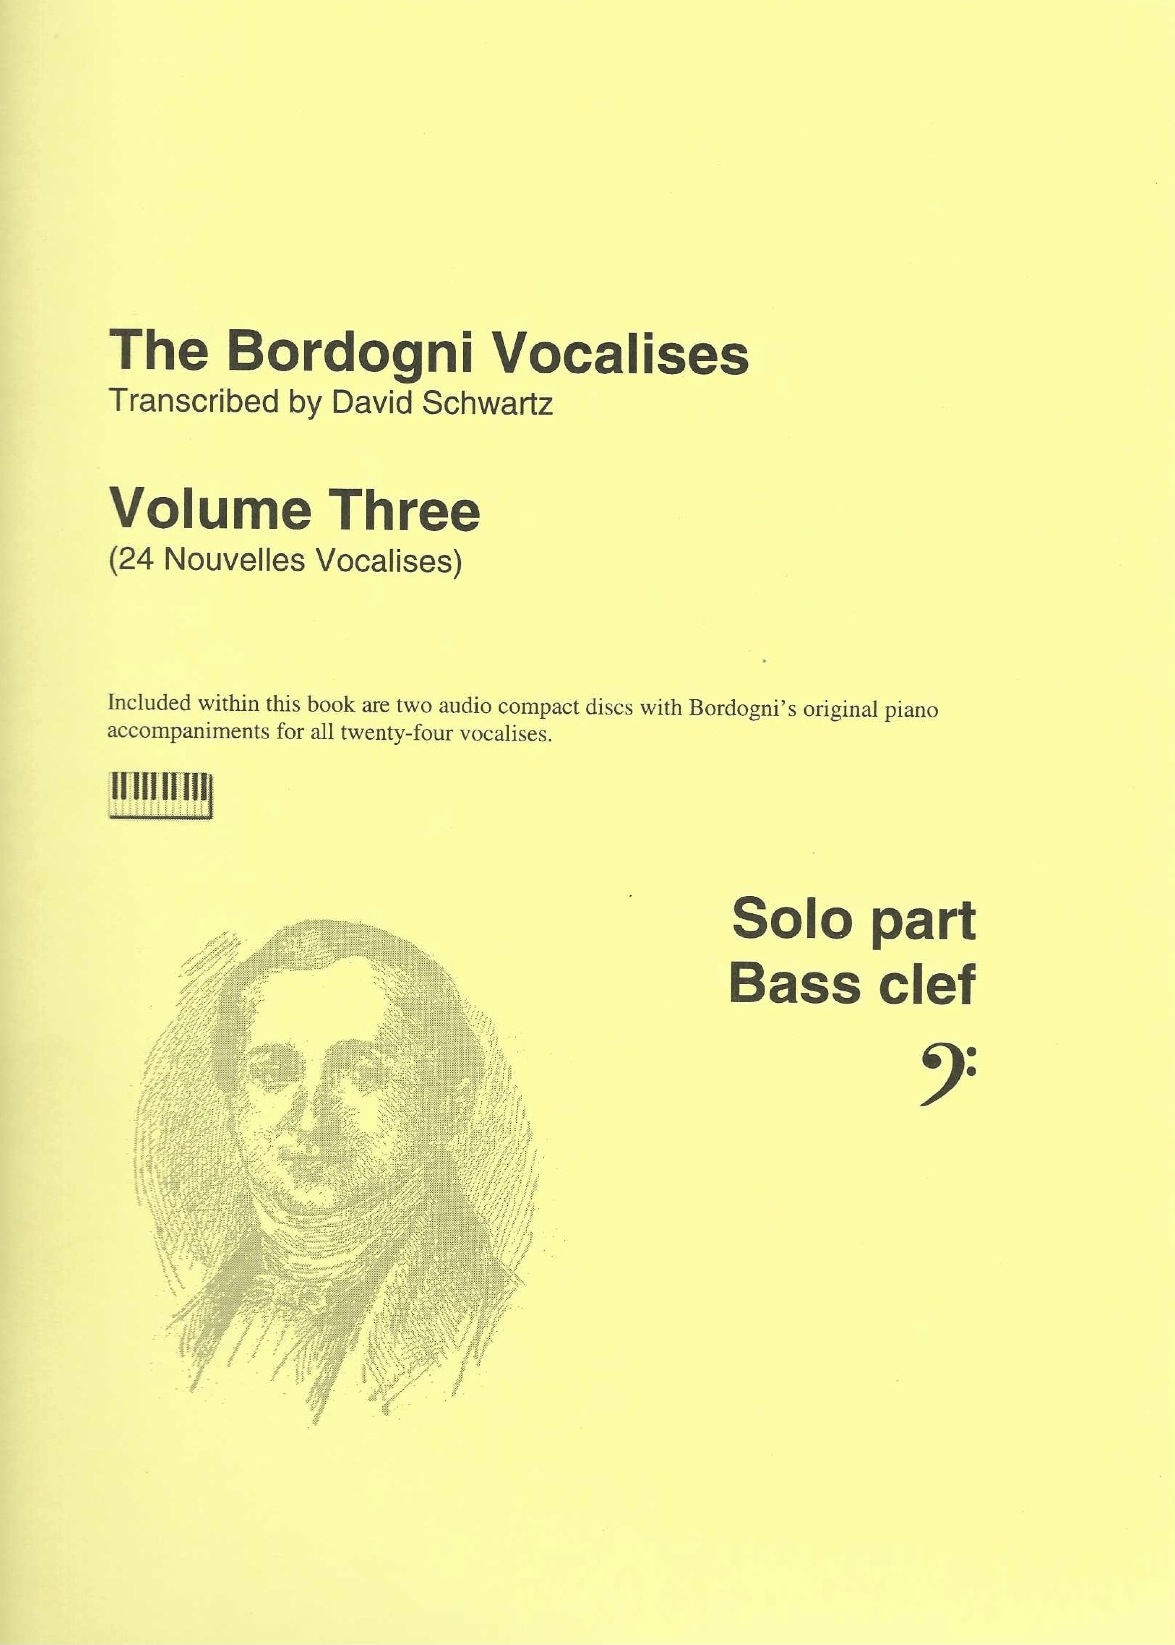 Bordogni Vocalises (Rochut) in bass clef - Vol.3 (24 pieces) - with piano acc. on CD